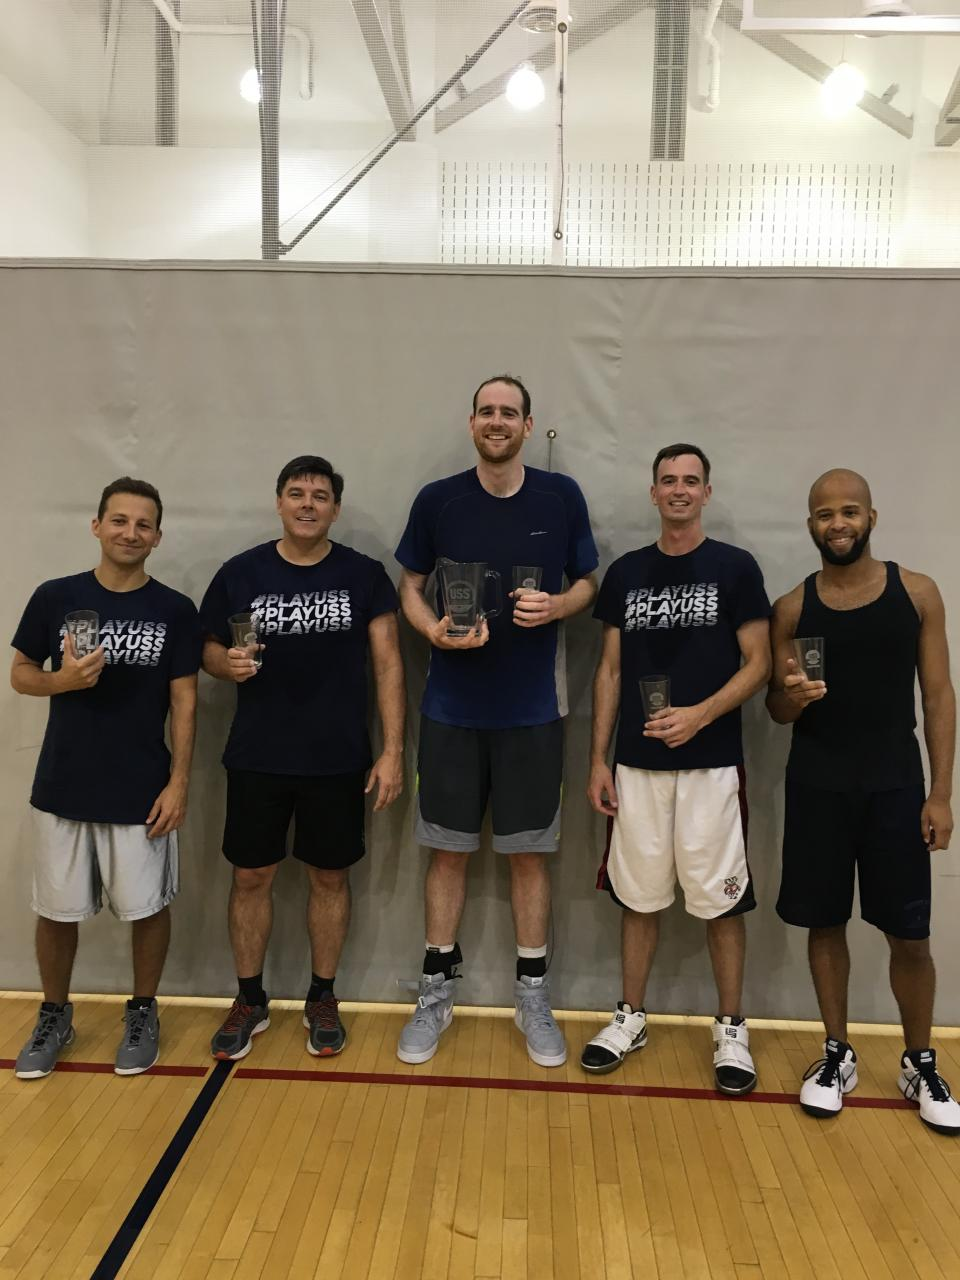 The Firm's DC basketball team took home the gold in this year's competition in a local summer basketball league. The Firm sponsors athletic teams in order to foster camaraderie among employees.